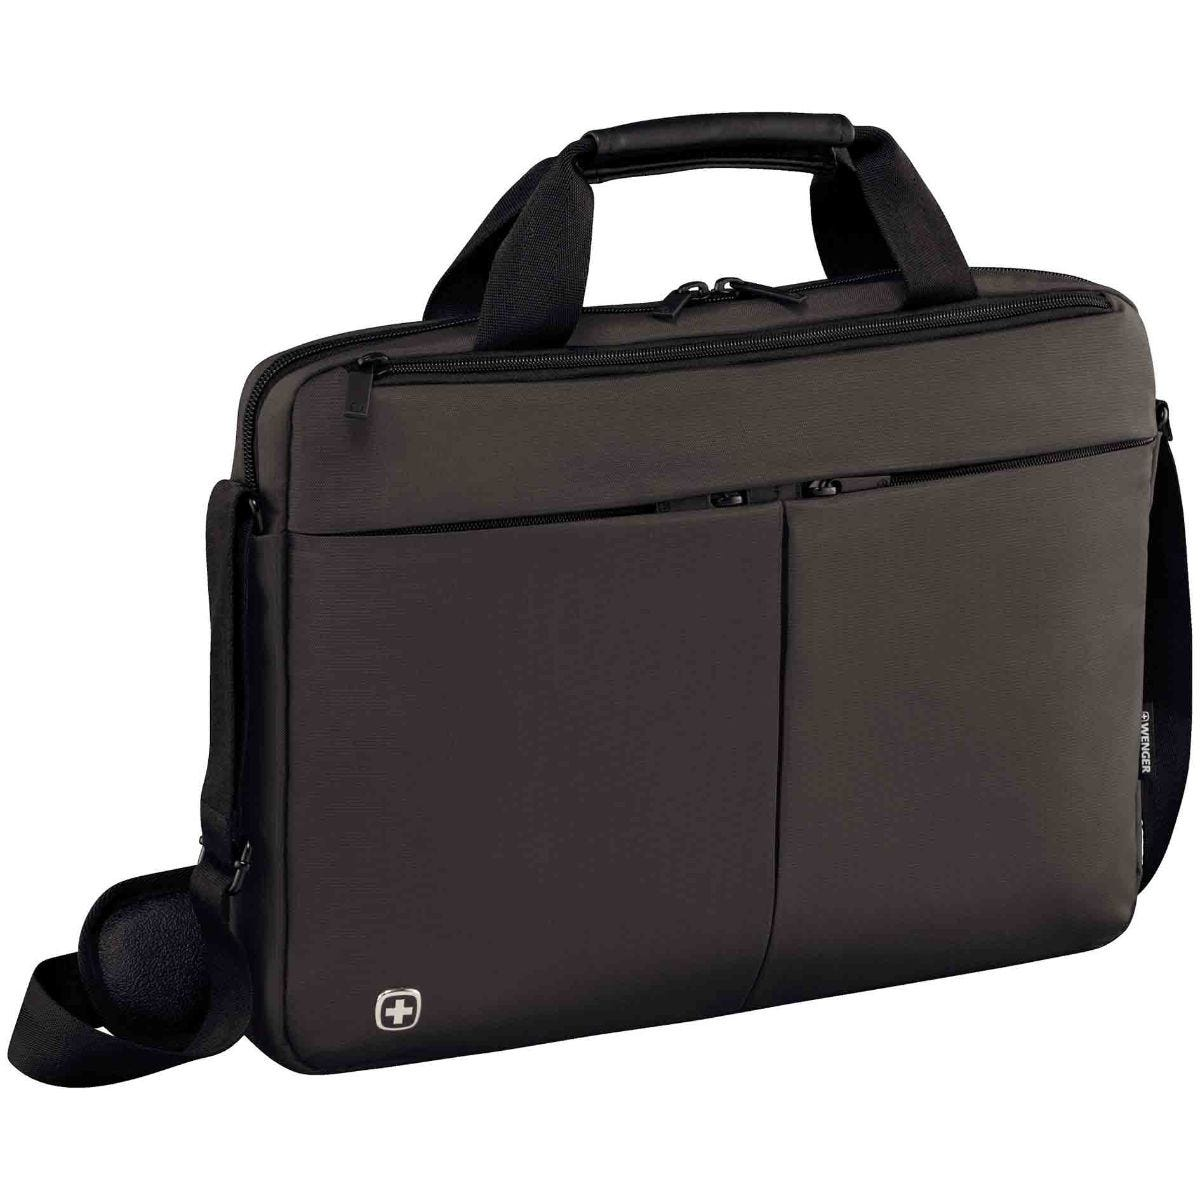 Multicoloured Laptop Bags   Sleeves Bags   Luggage Stationery - Ryman 01545b3f7a792